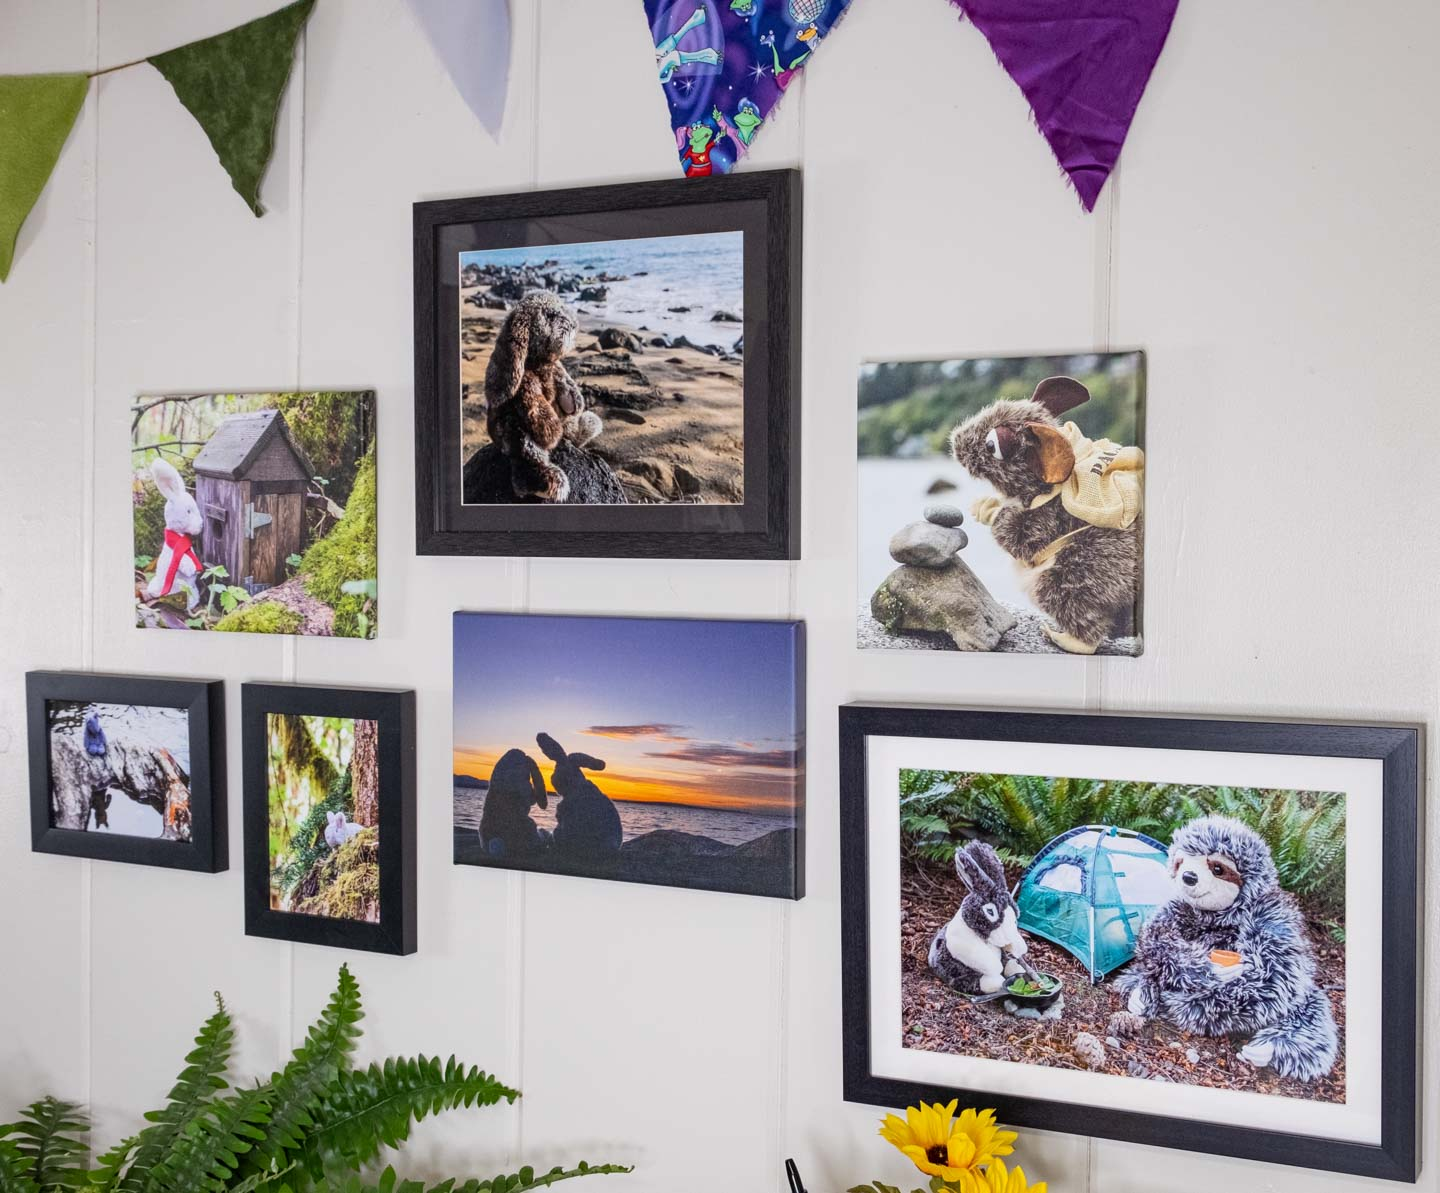 Photographs of stuffed animals framed and hung on a wall in a group